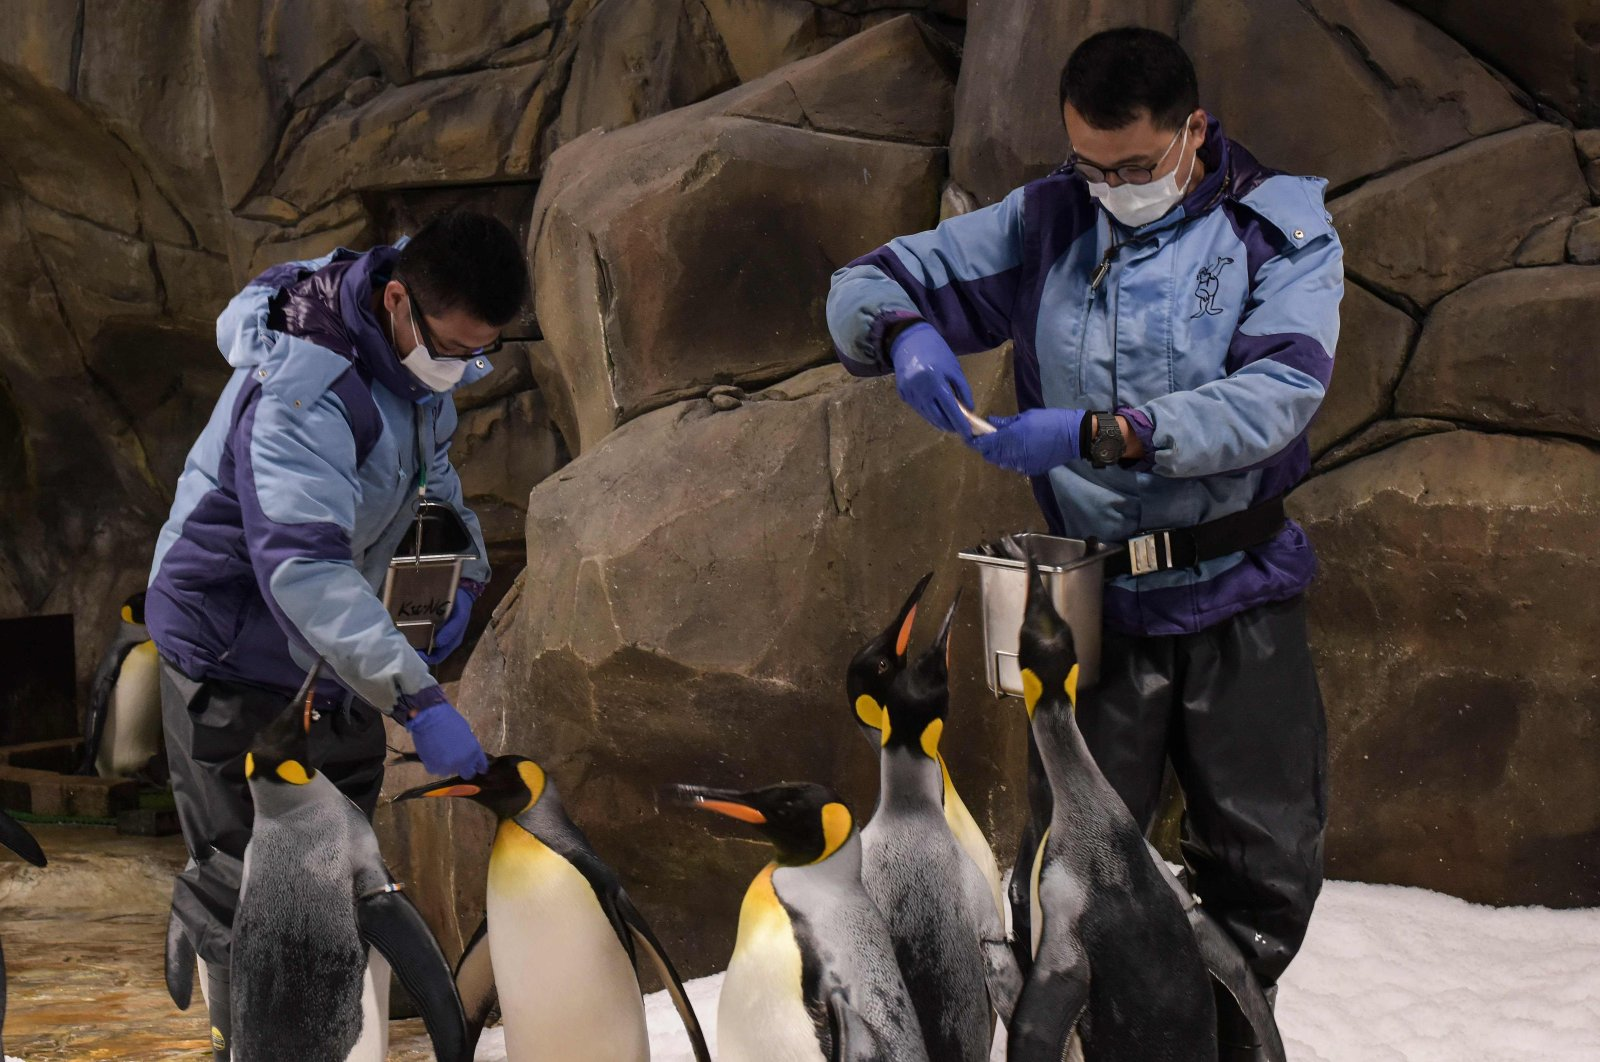 King penguins are fed in their enclosure at the Ocean Park theme park, which is currently closed due to the COVID-19 novel coronavirus, in Hong Kong, May 4, 2020. (AFP Photo)